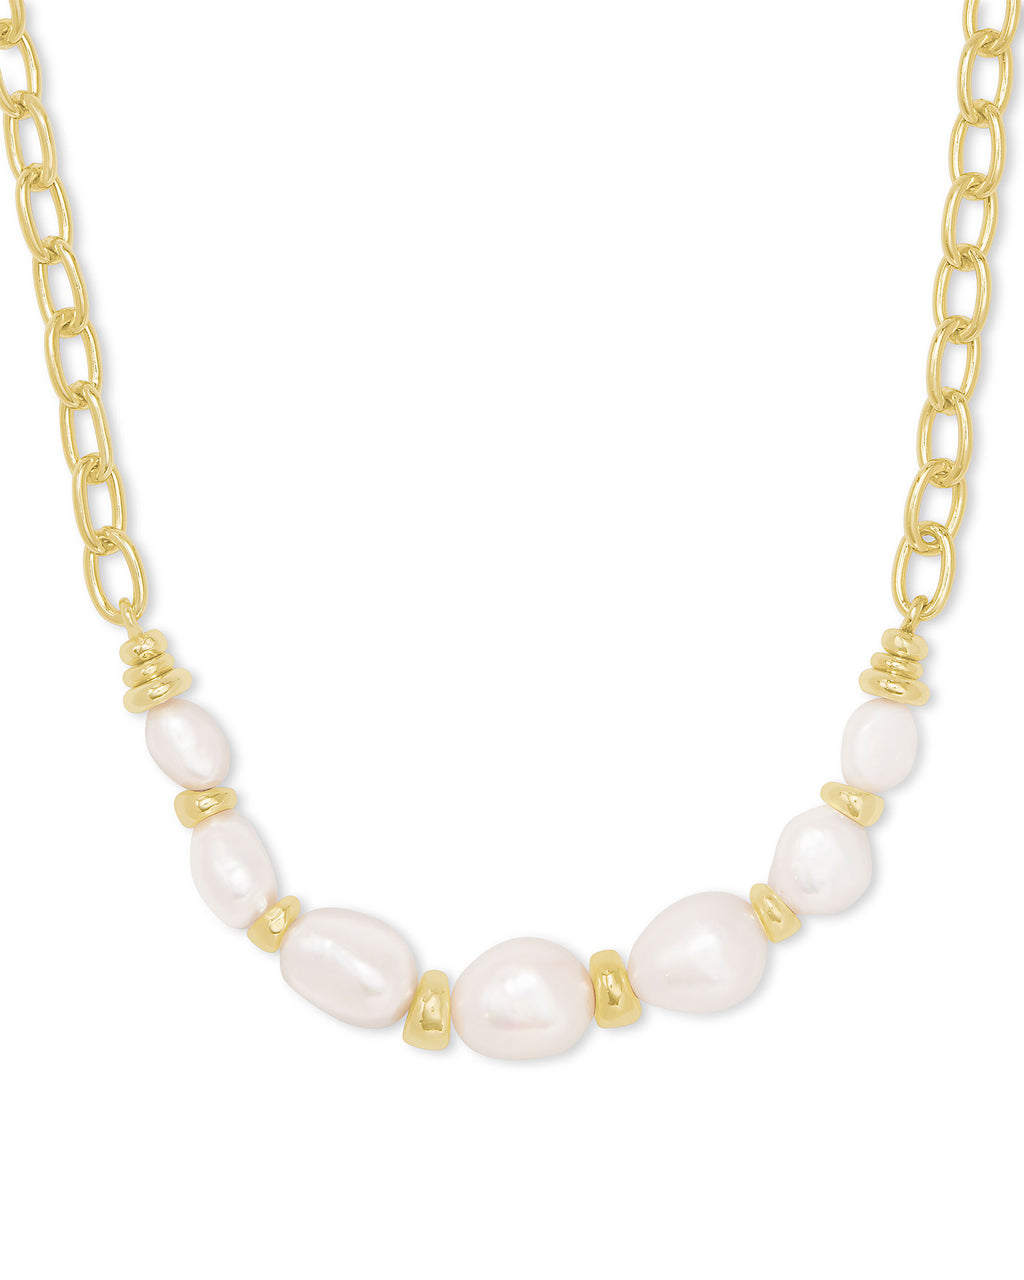 Demi Chain Necklace in Gold Baroque Pearl